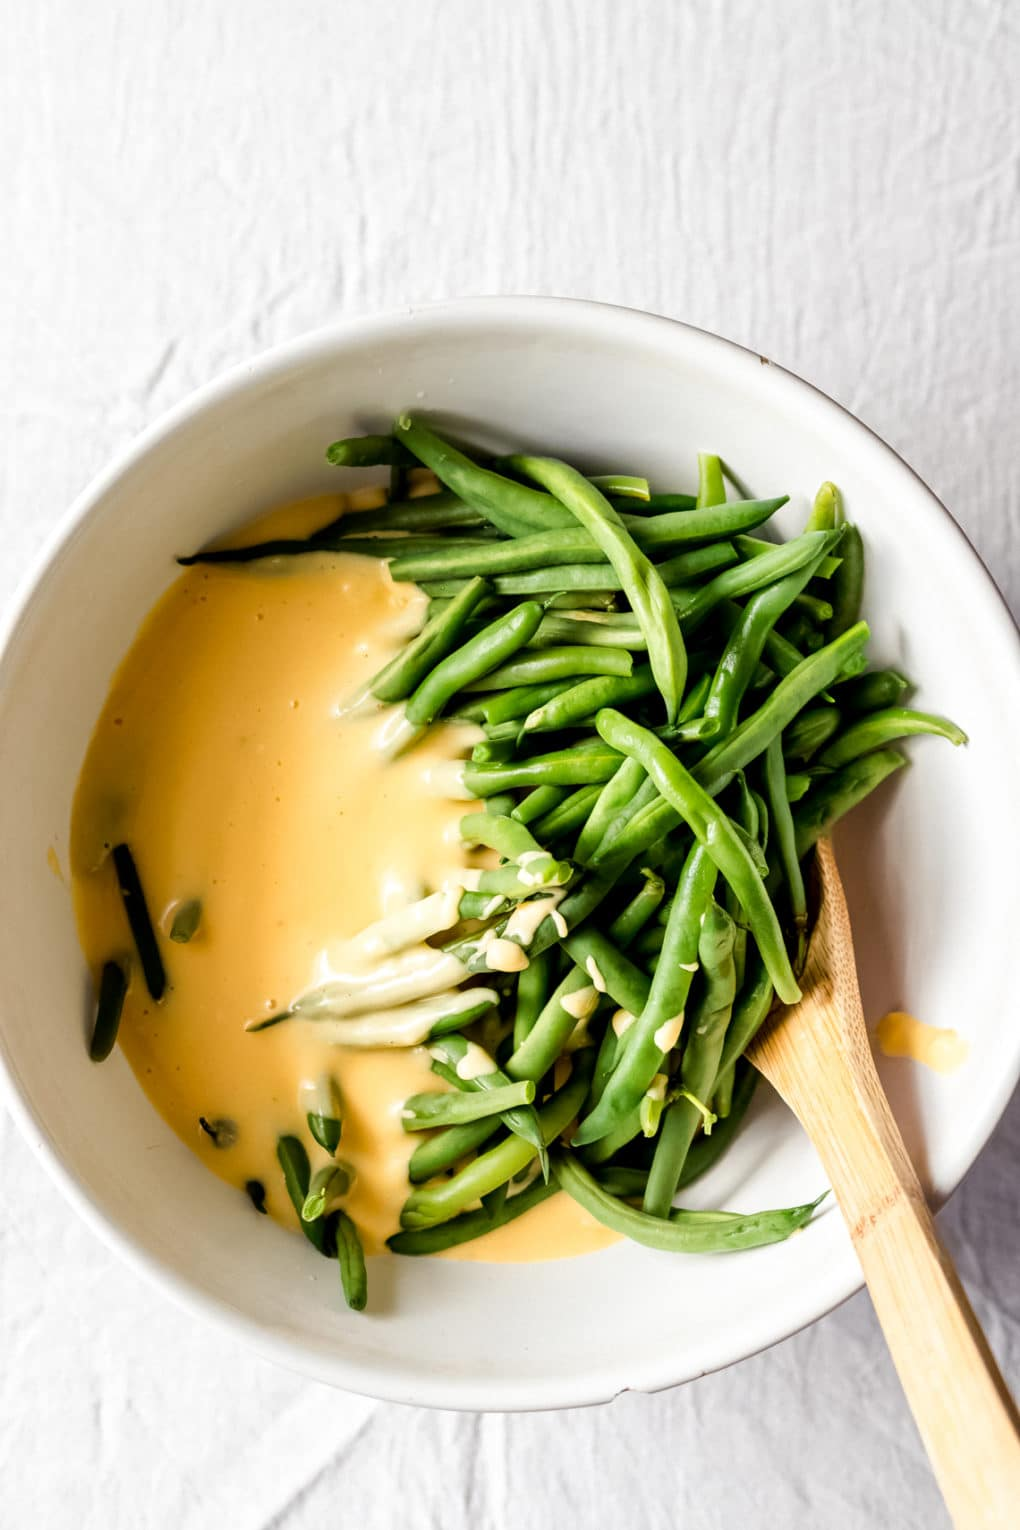 cooked green beans in a white bowl with a yellow cheese sauce and a wooden spoon